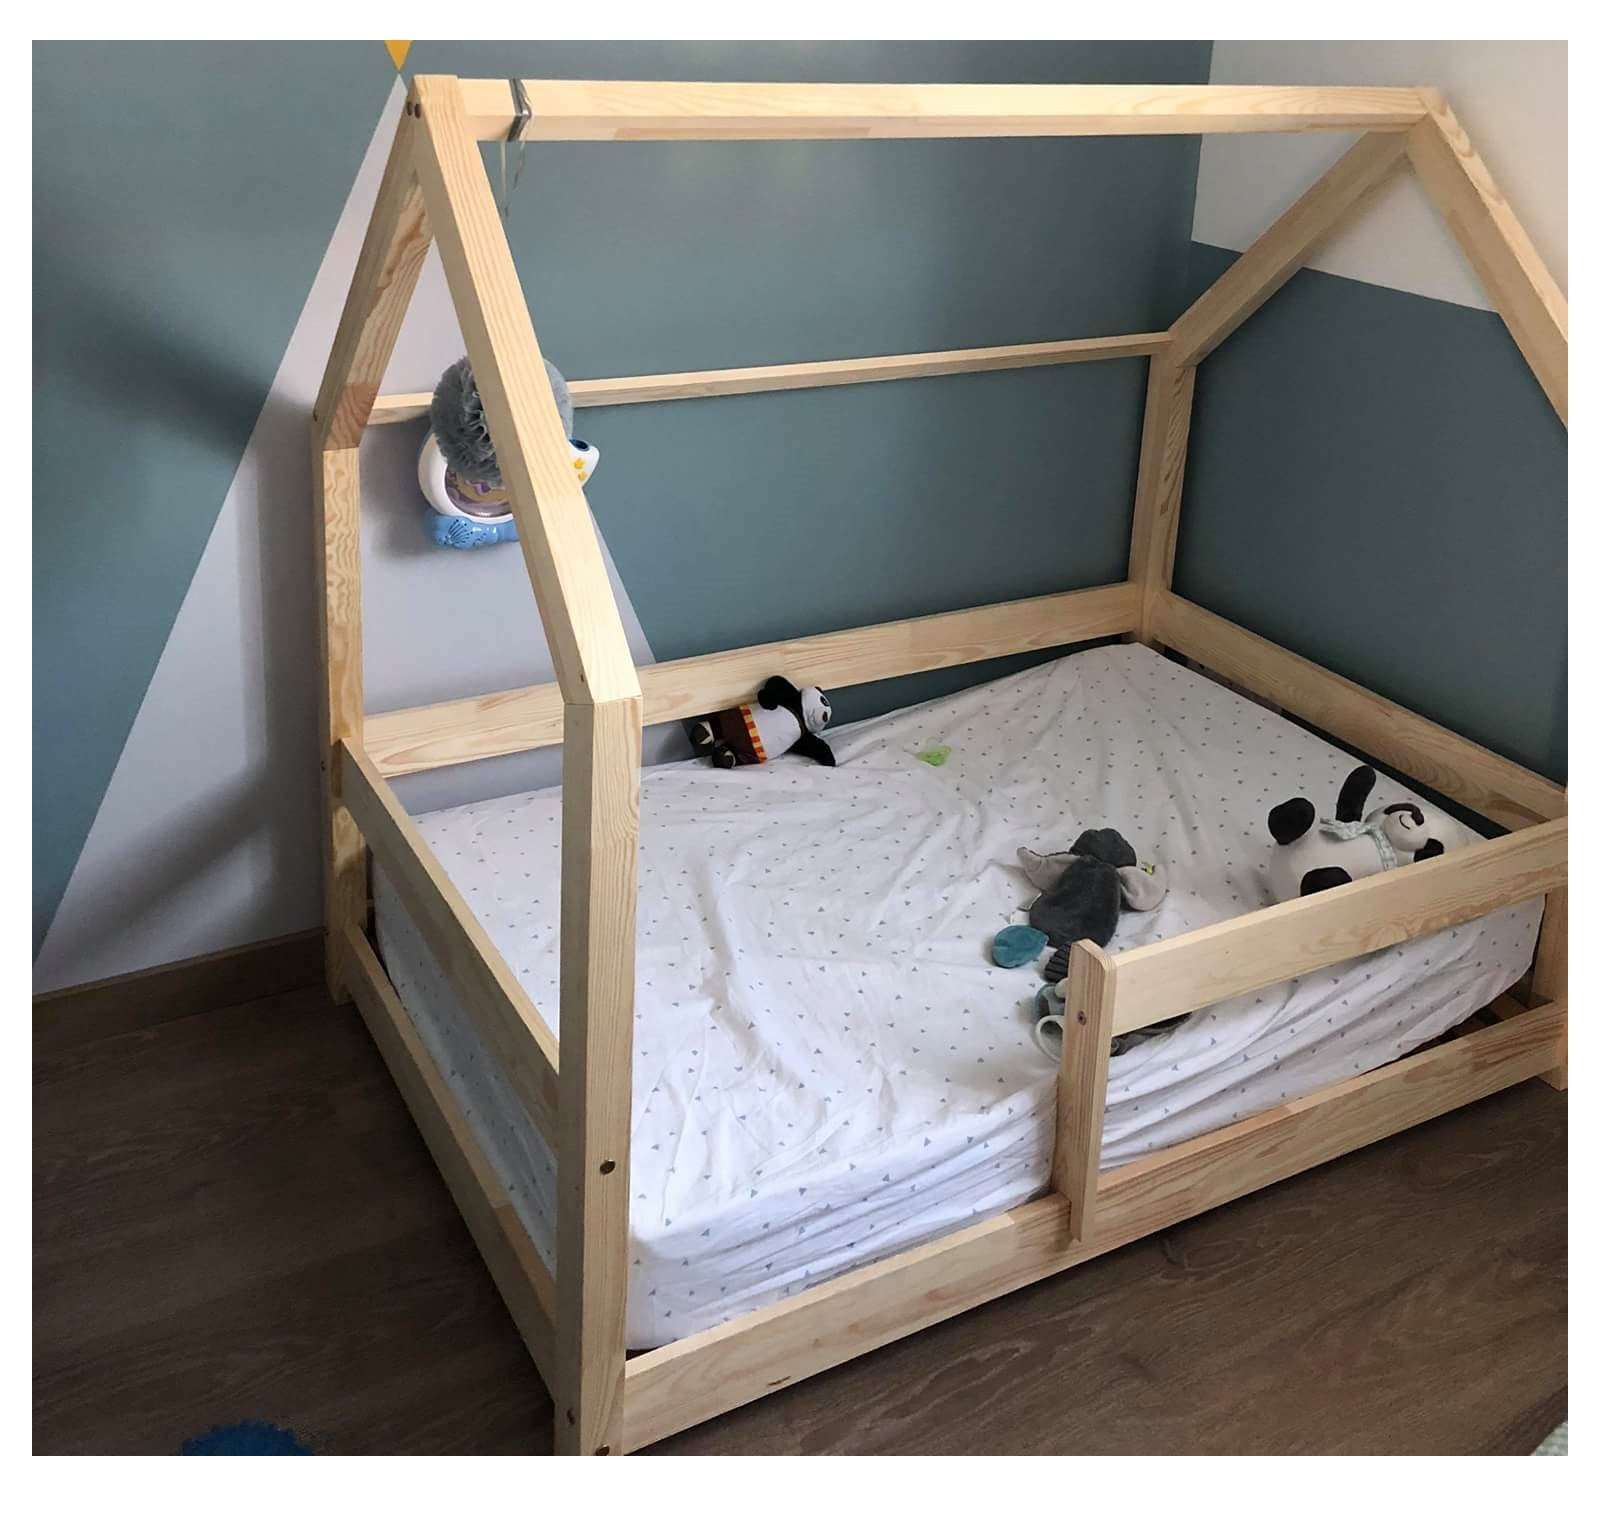 Lit Au Sol Montessori montessori milo natural hut bed - with or without barriers